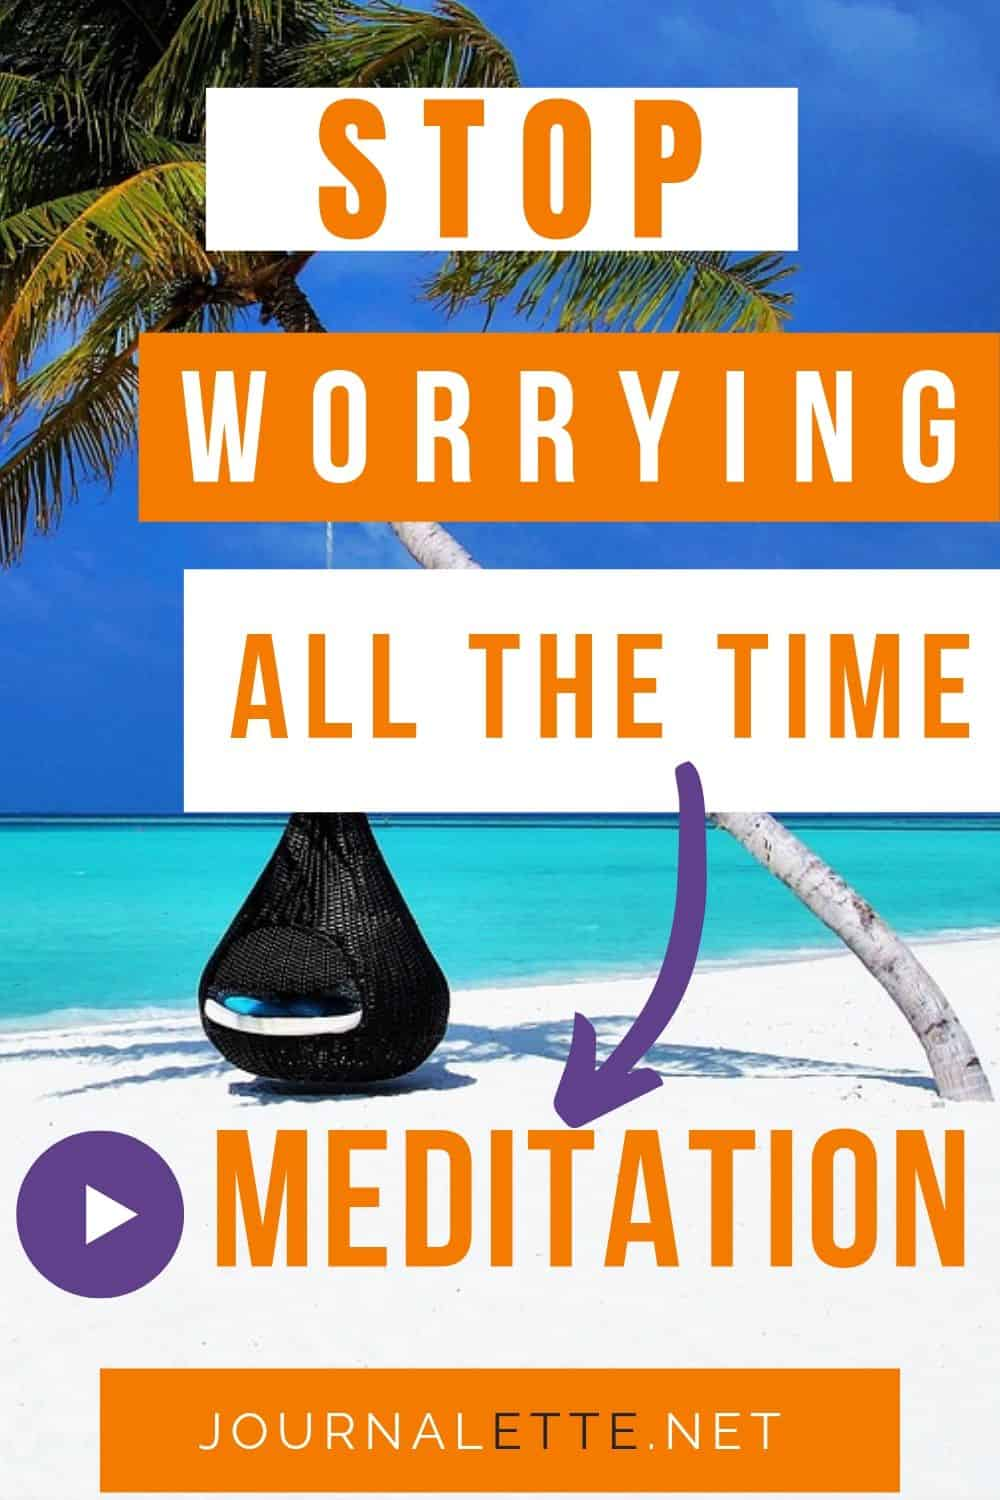 image of shore with text overlays stop worrying all the time meditation